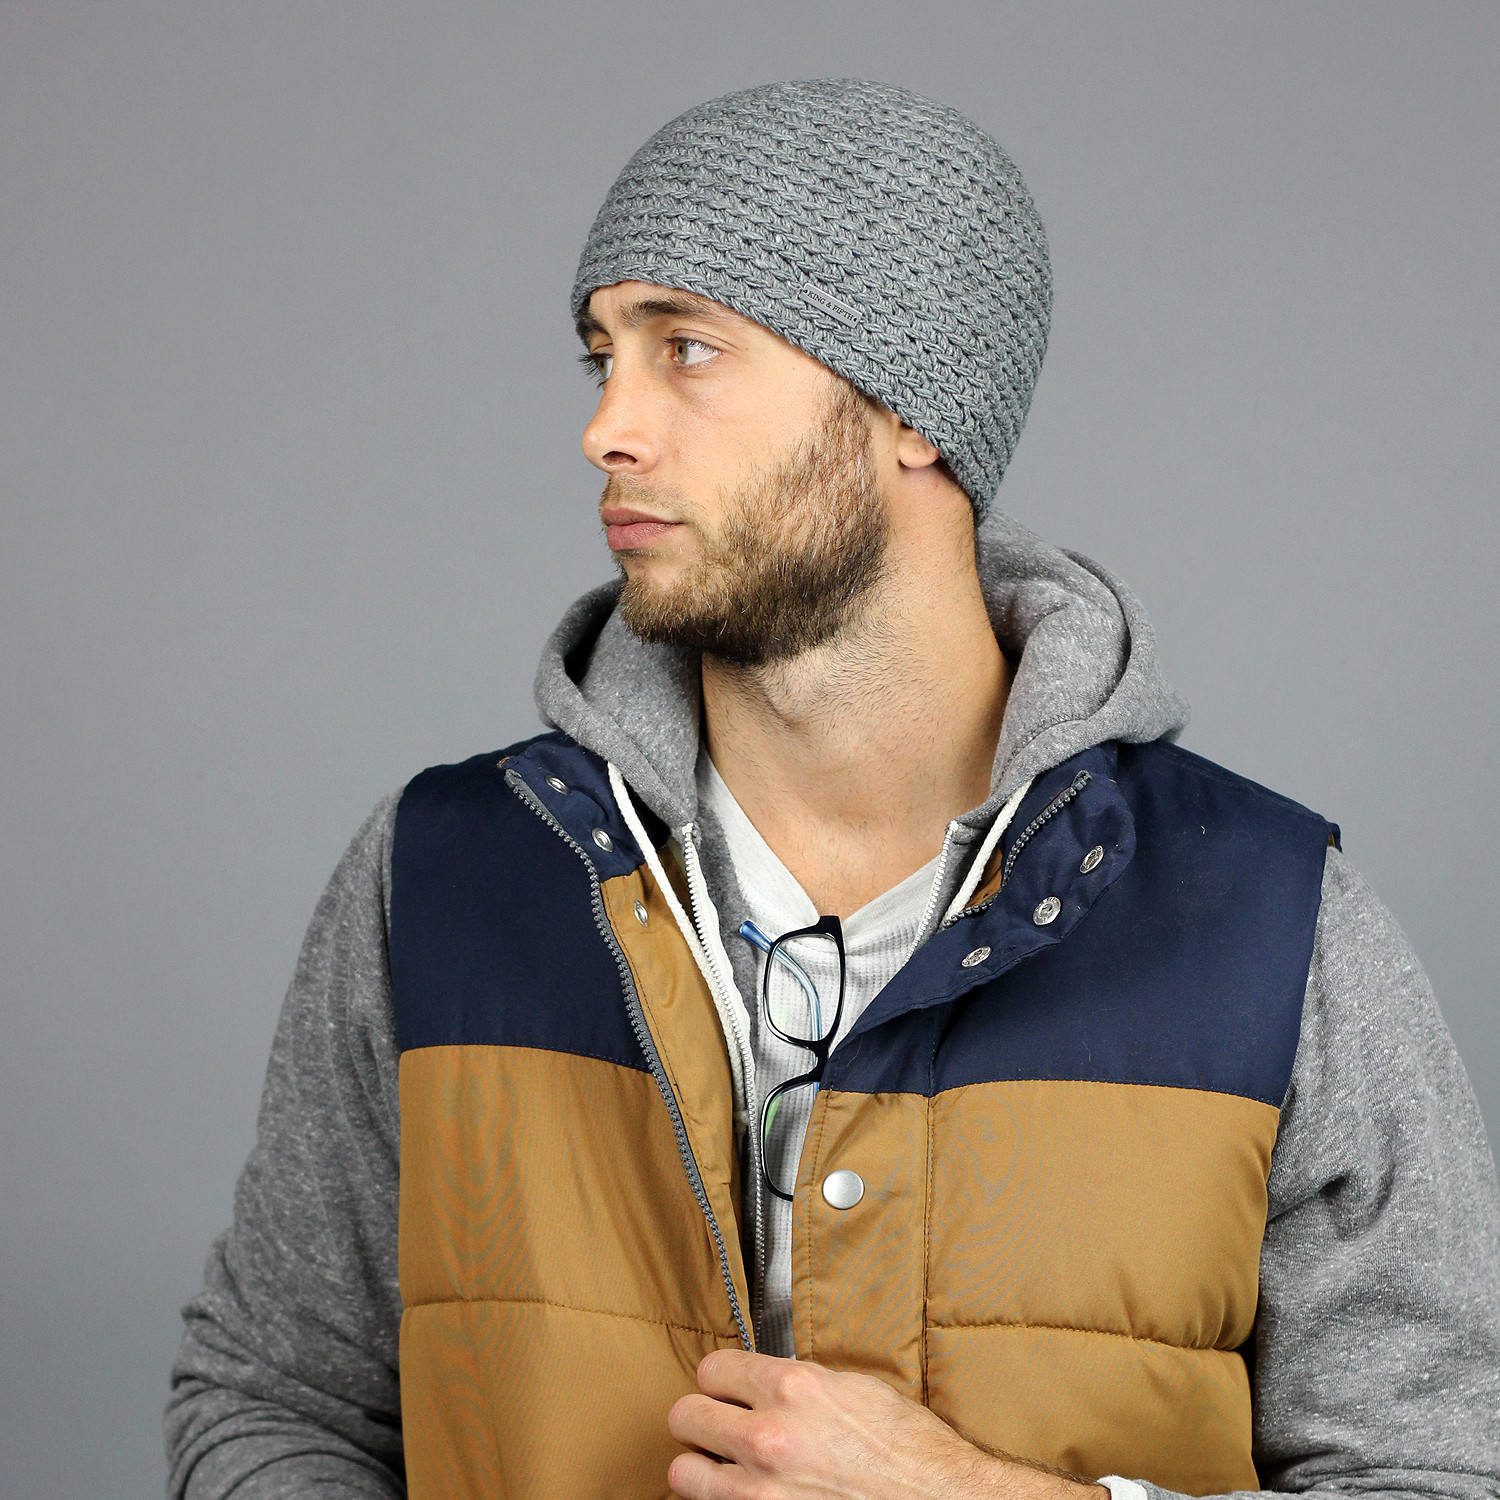 Mens Beanies hats are the brimless hats sewed in fleece